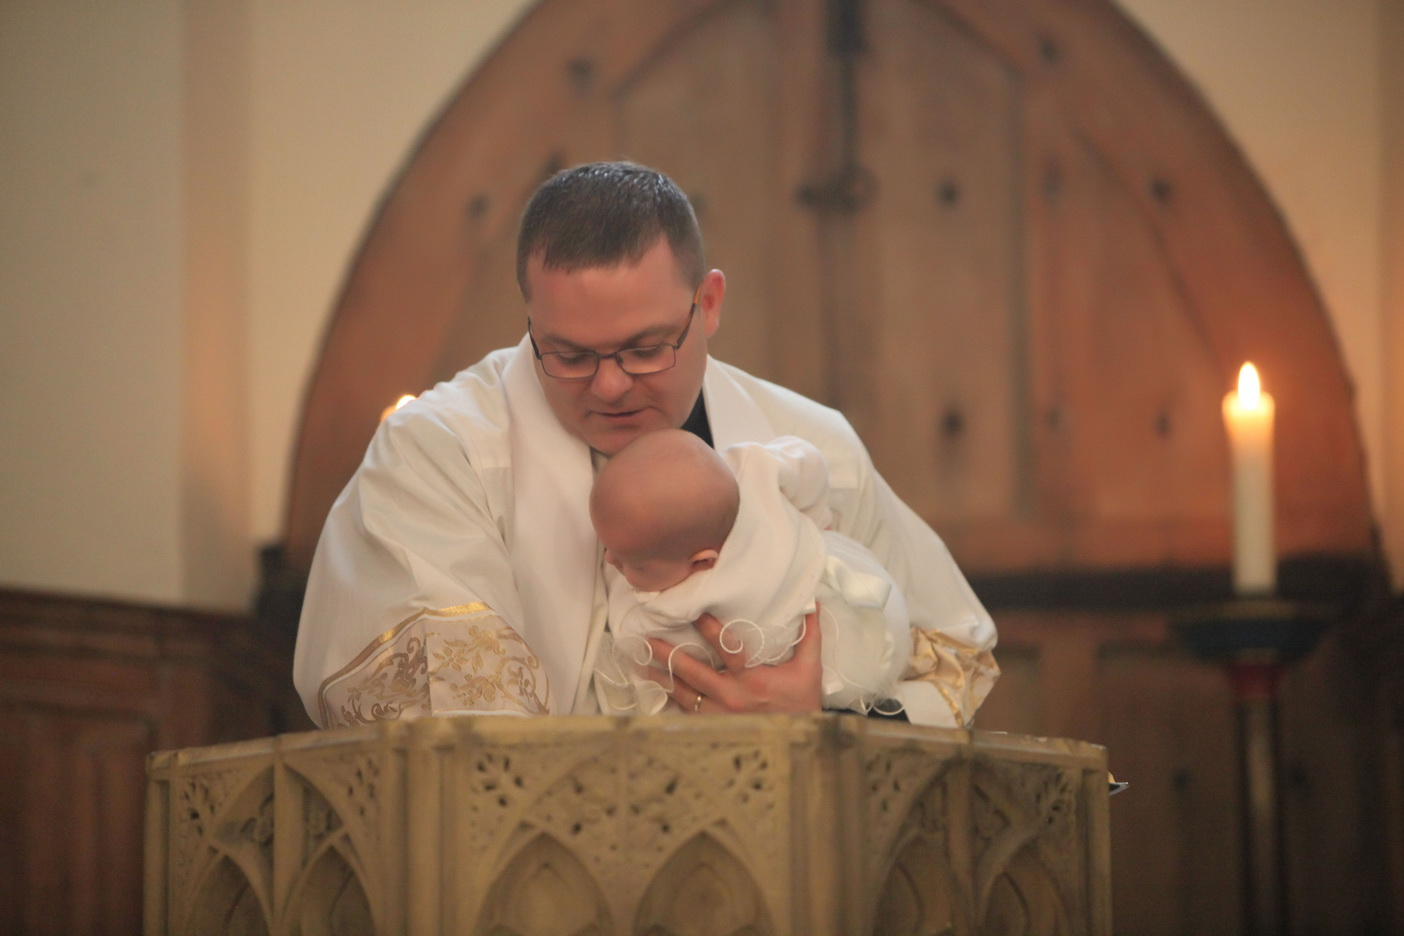 Fr Darren baptising a baby in his church